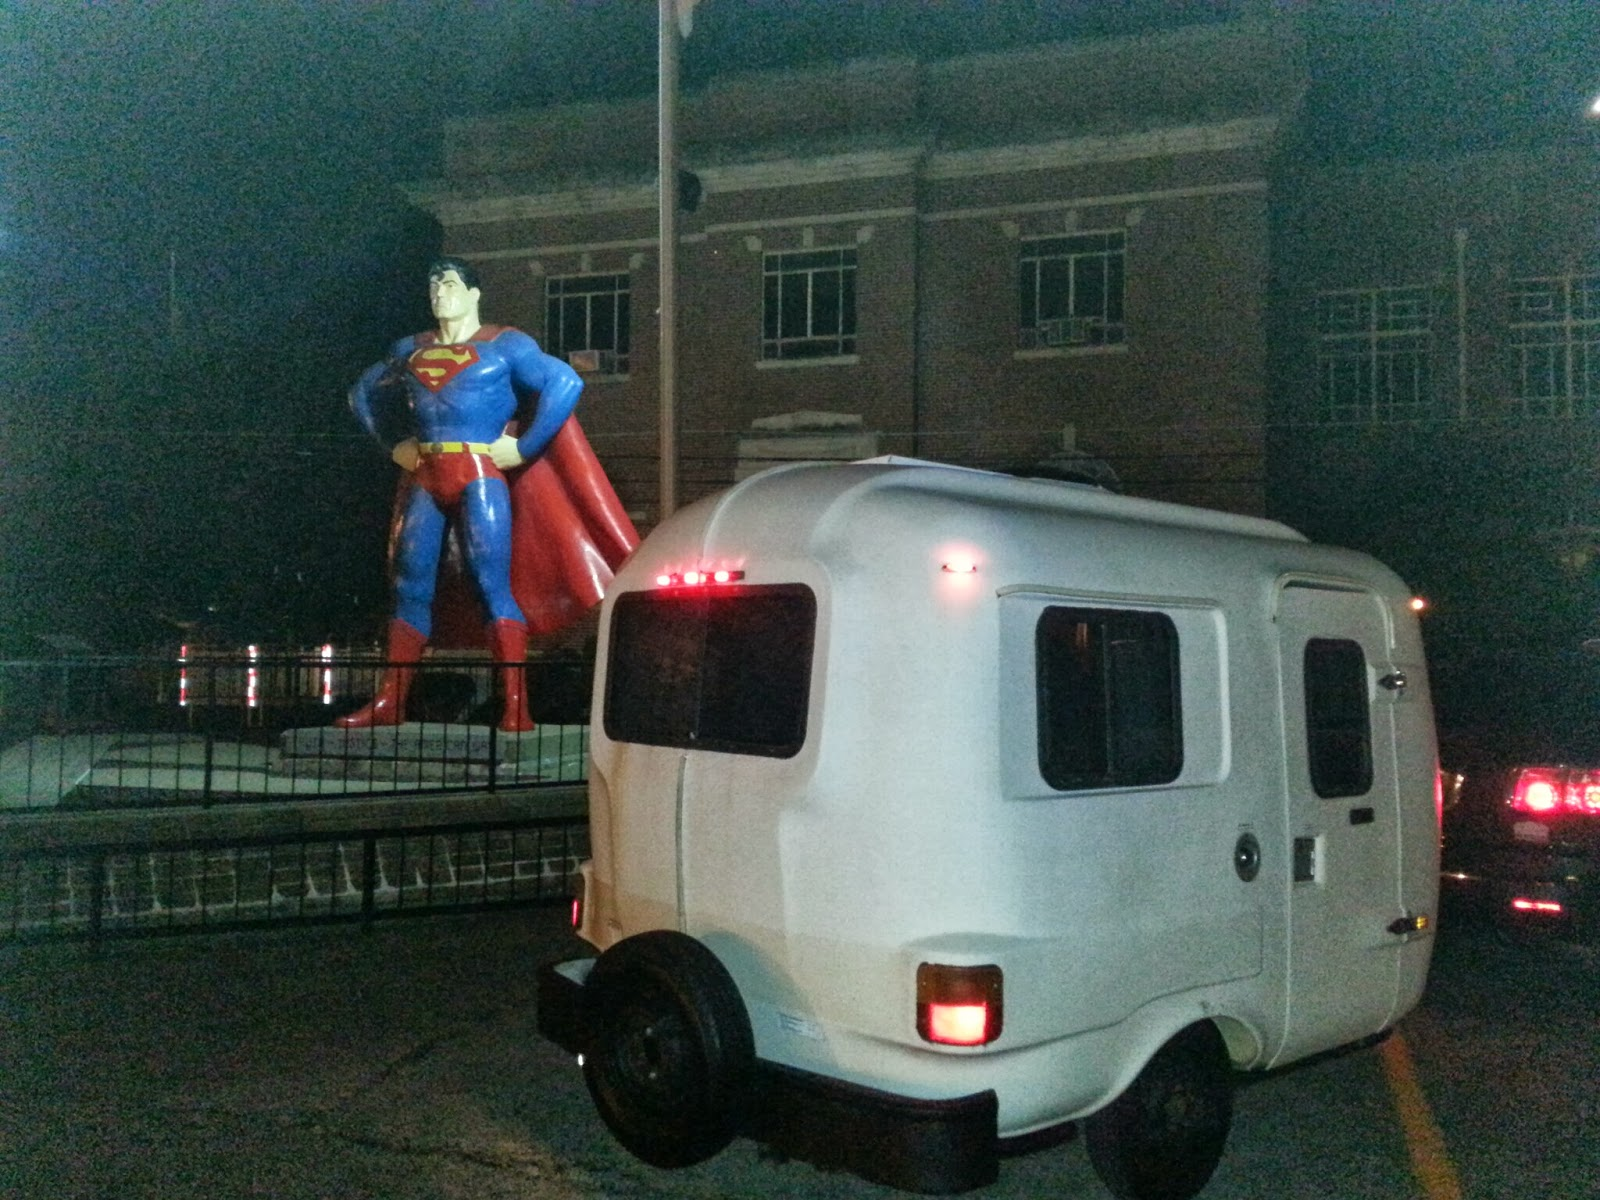 Fiberglass U-haul (uhaul) CT13 Camper with Superman in Metropolis